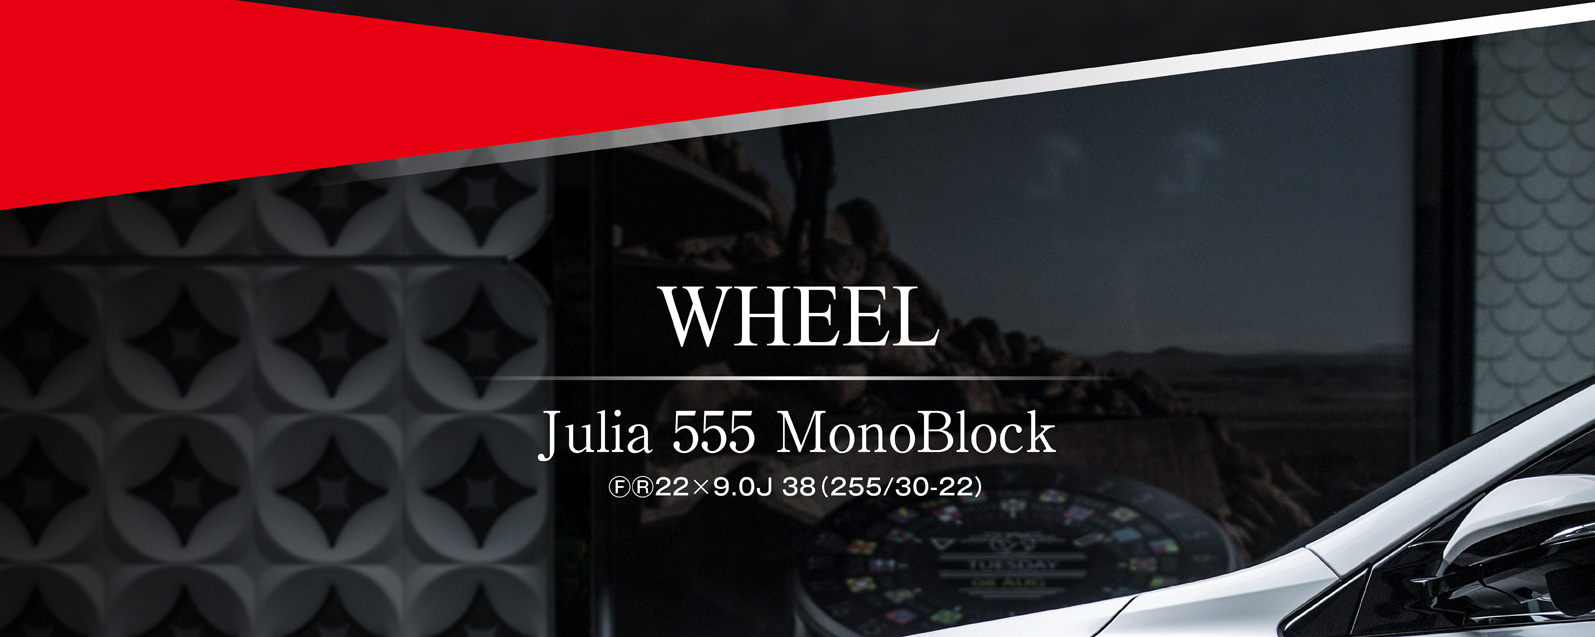 WHEEL Julia 555 MonoBlock FR22×9.0J 38(255/30-22)